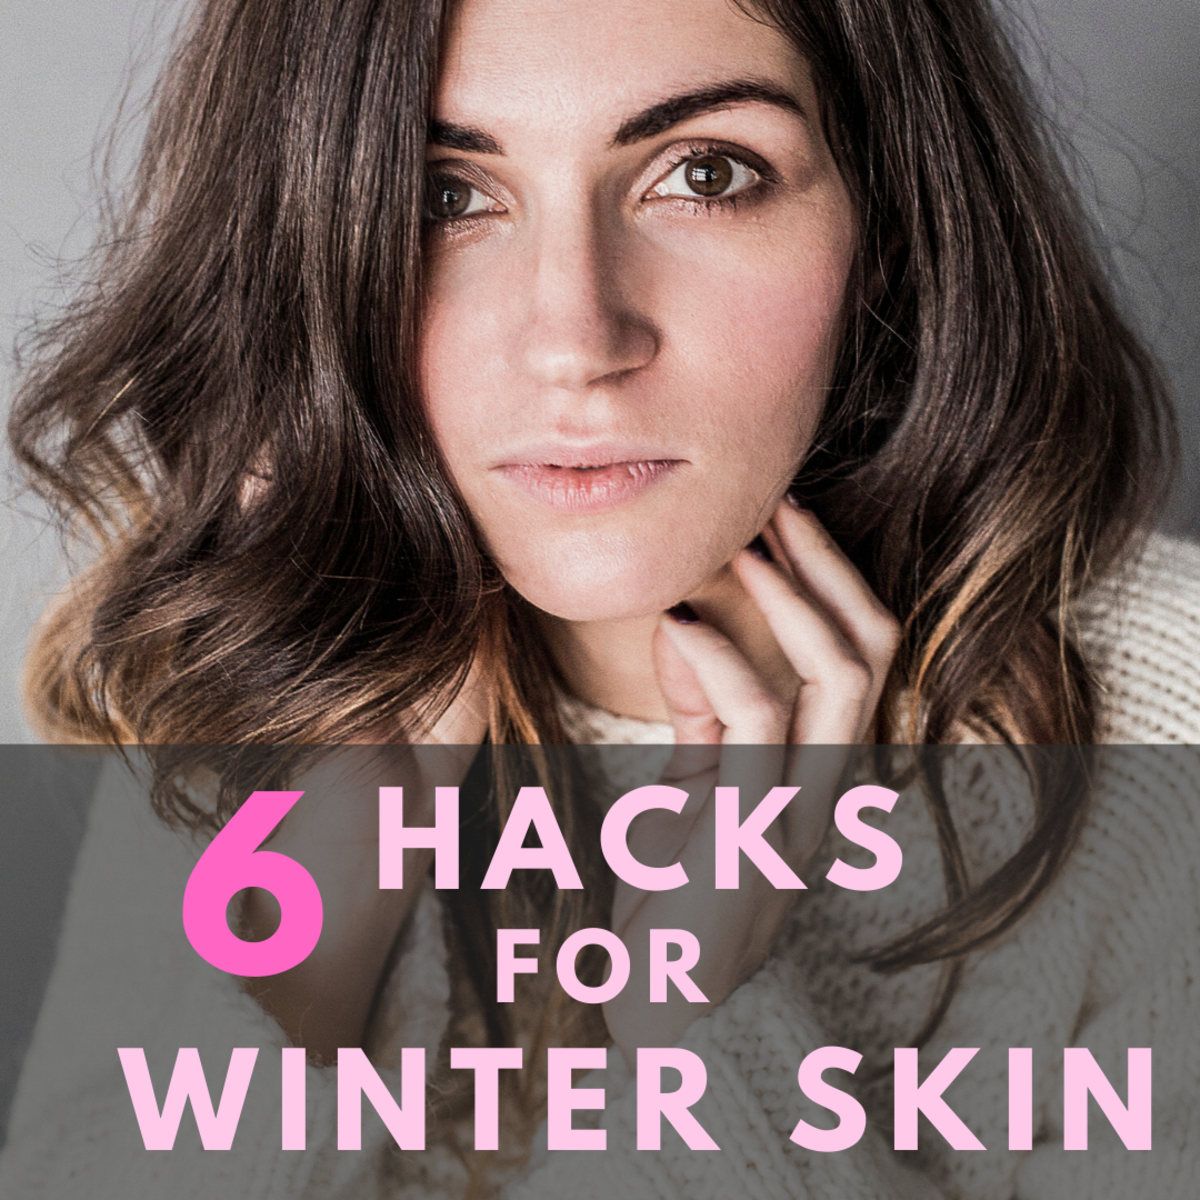 6 Hacks for Winter Skin